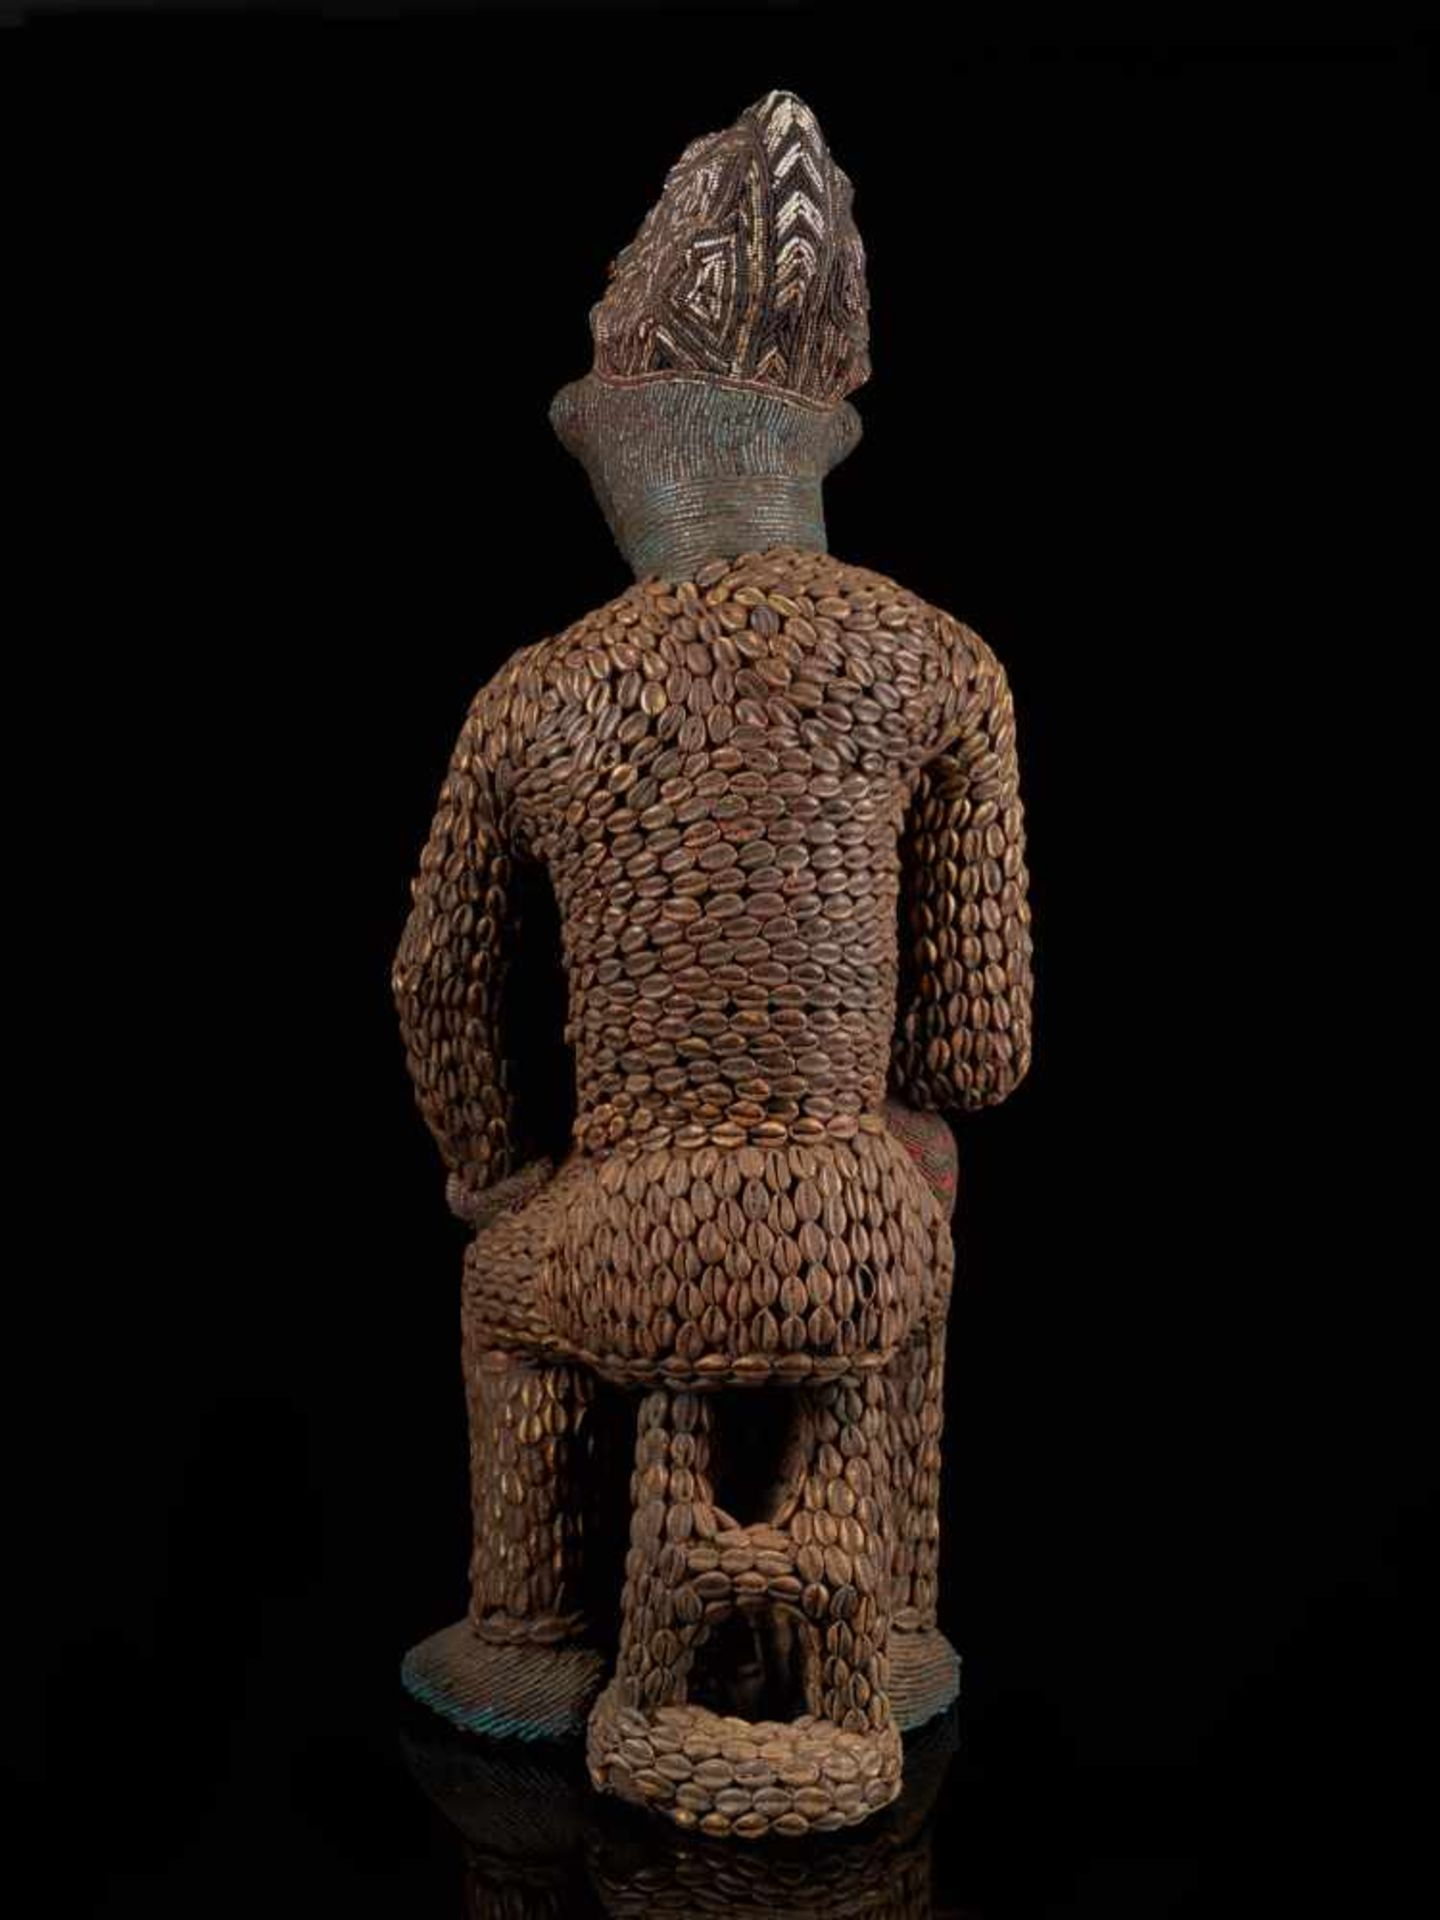 Beaded Royal Figure Holding Wine Vessel - Tribal ArtThis exquisite beaded figure of a man holding - Bild 3 aus 8